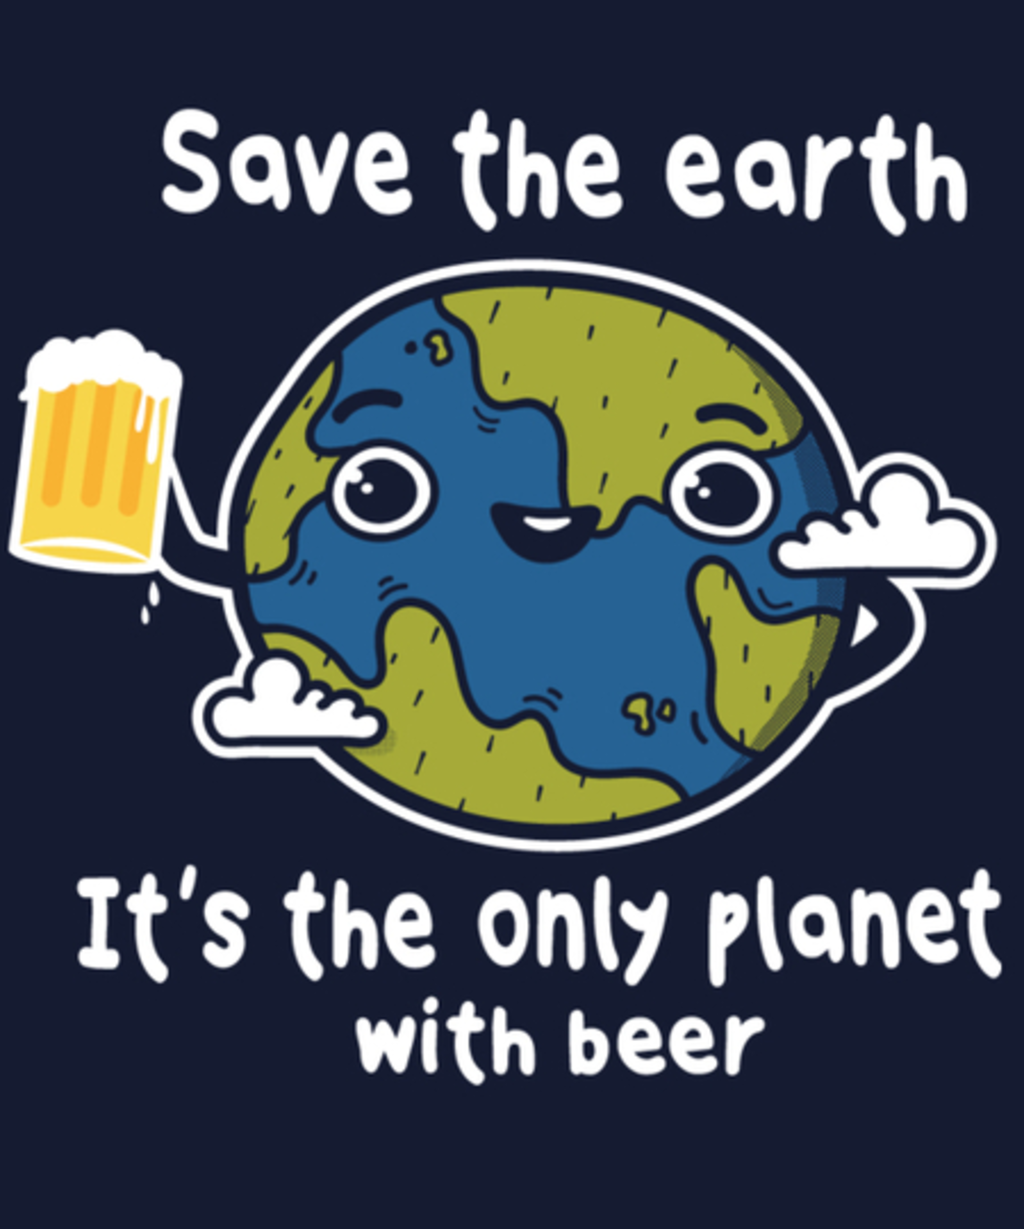 Qwertee: The only planet with beer